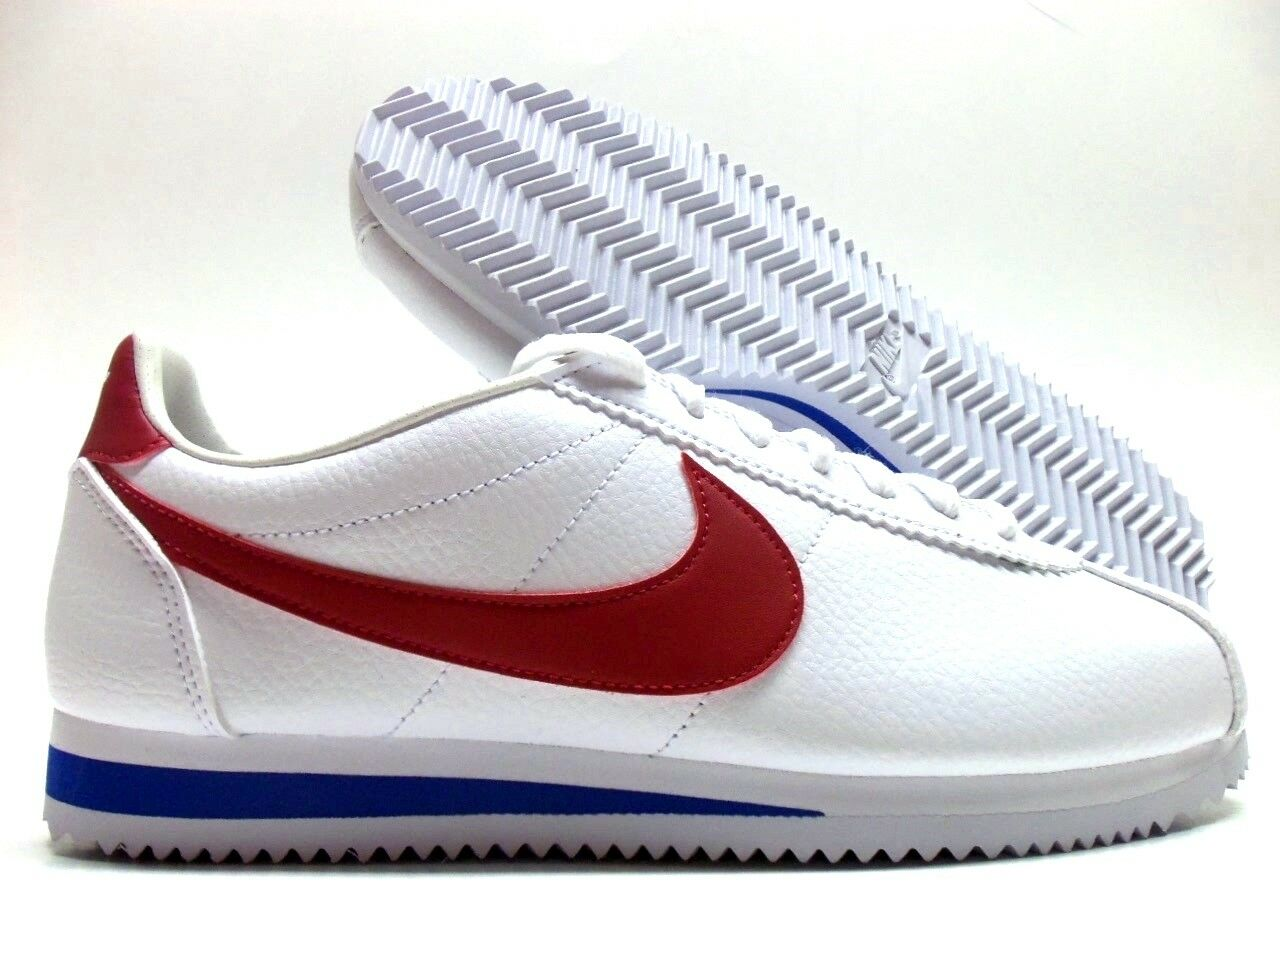 NIKE CLASSIC CORTEZ LEATHER FORREST GUMP WHITE VARSITY RED MEN 8.5 [749571-154]